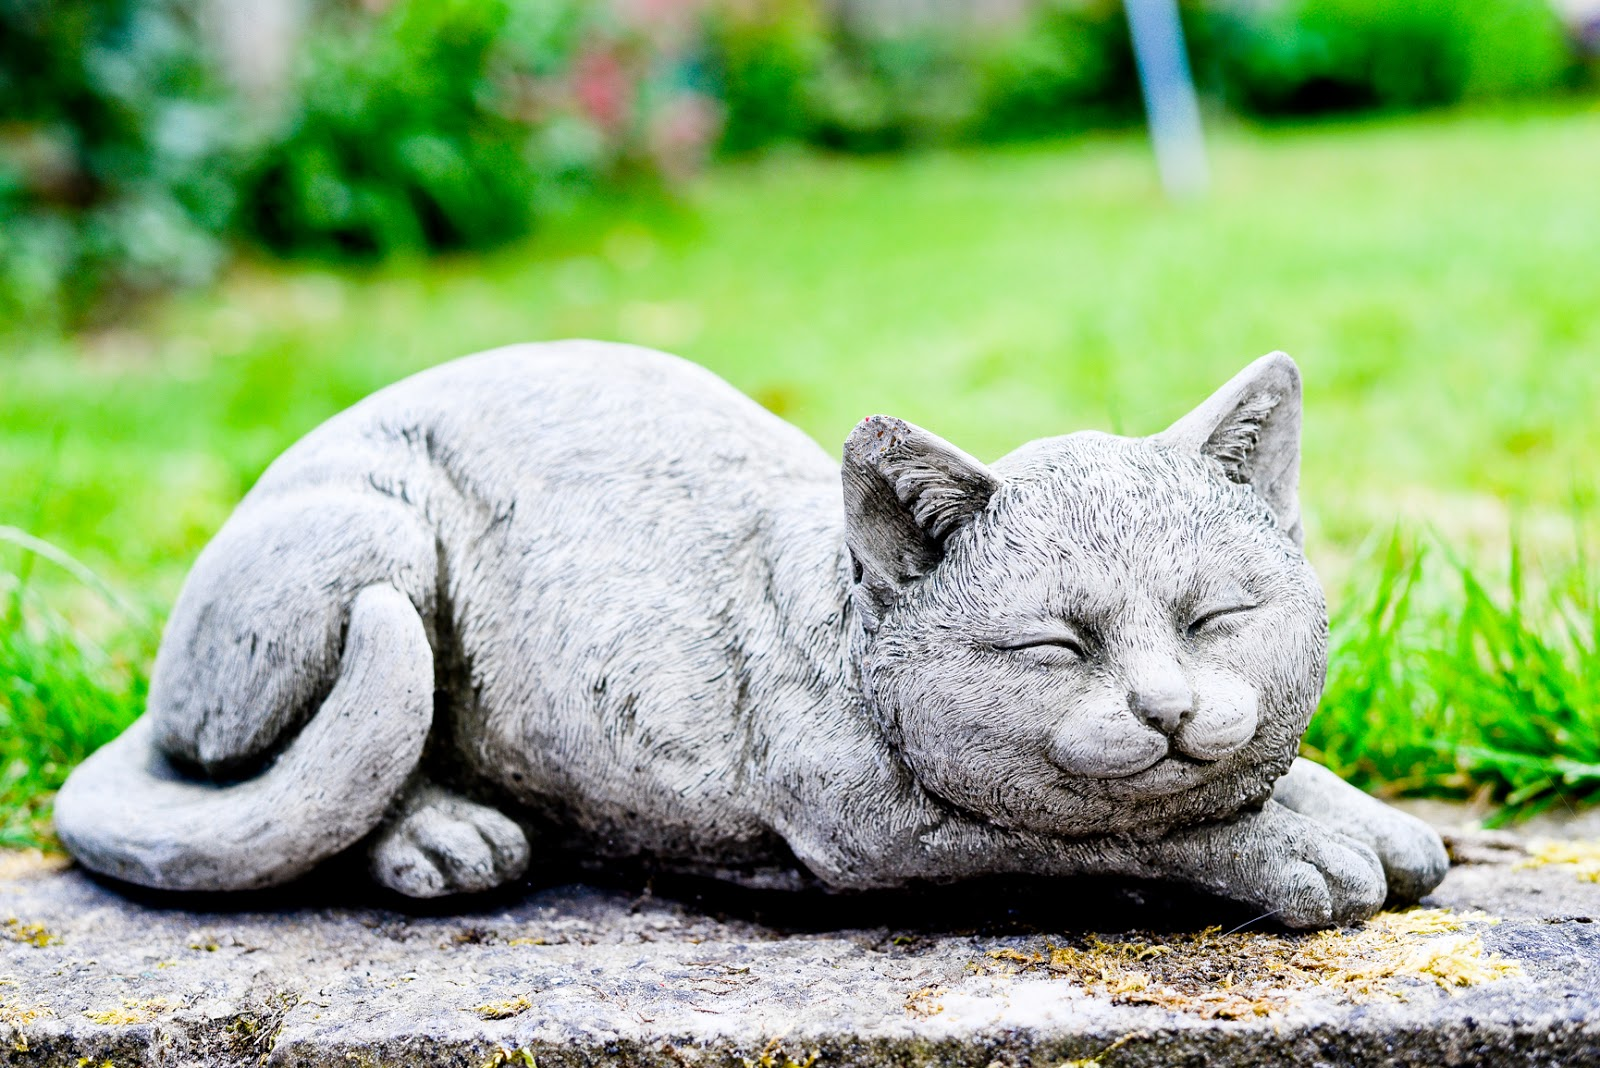 cat garden ornament, Homesense, homsense store bedford, homesense haul,